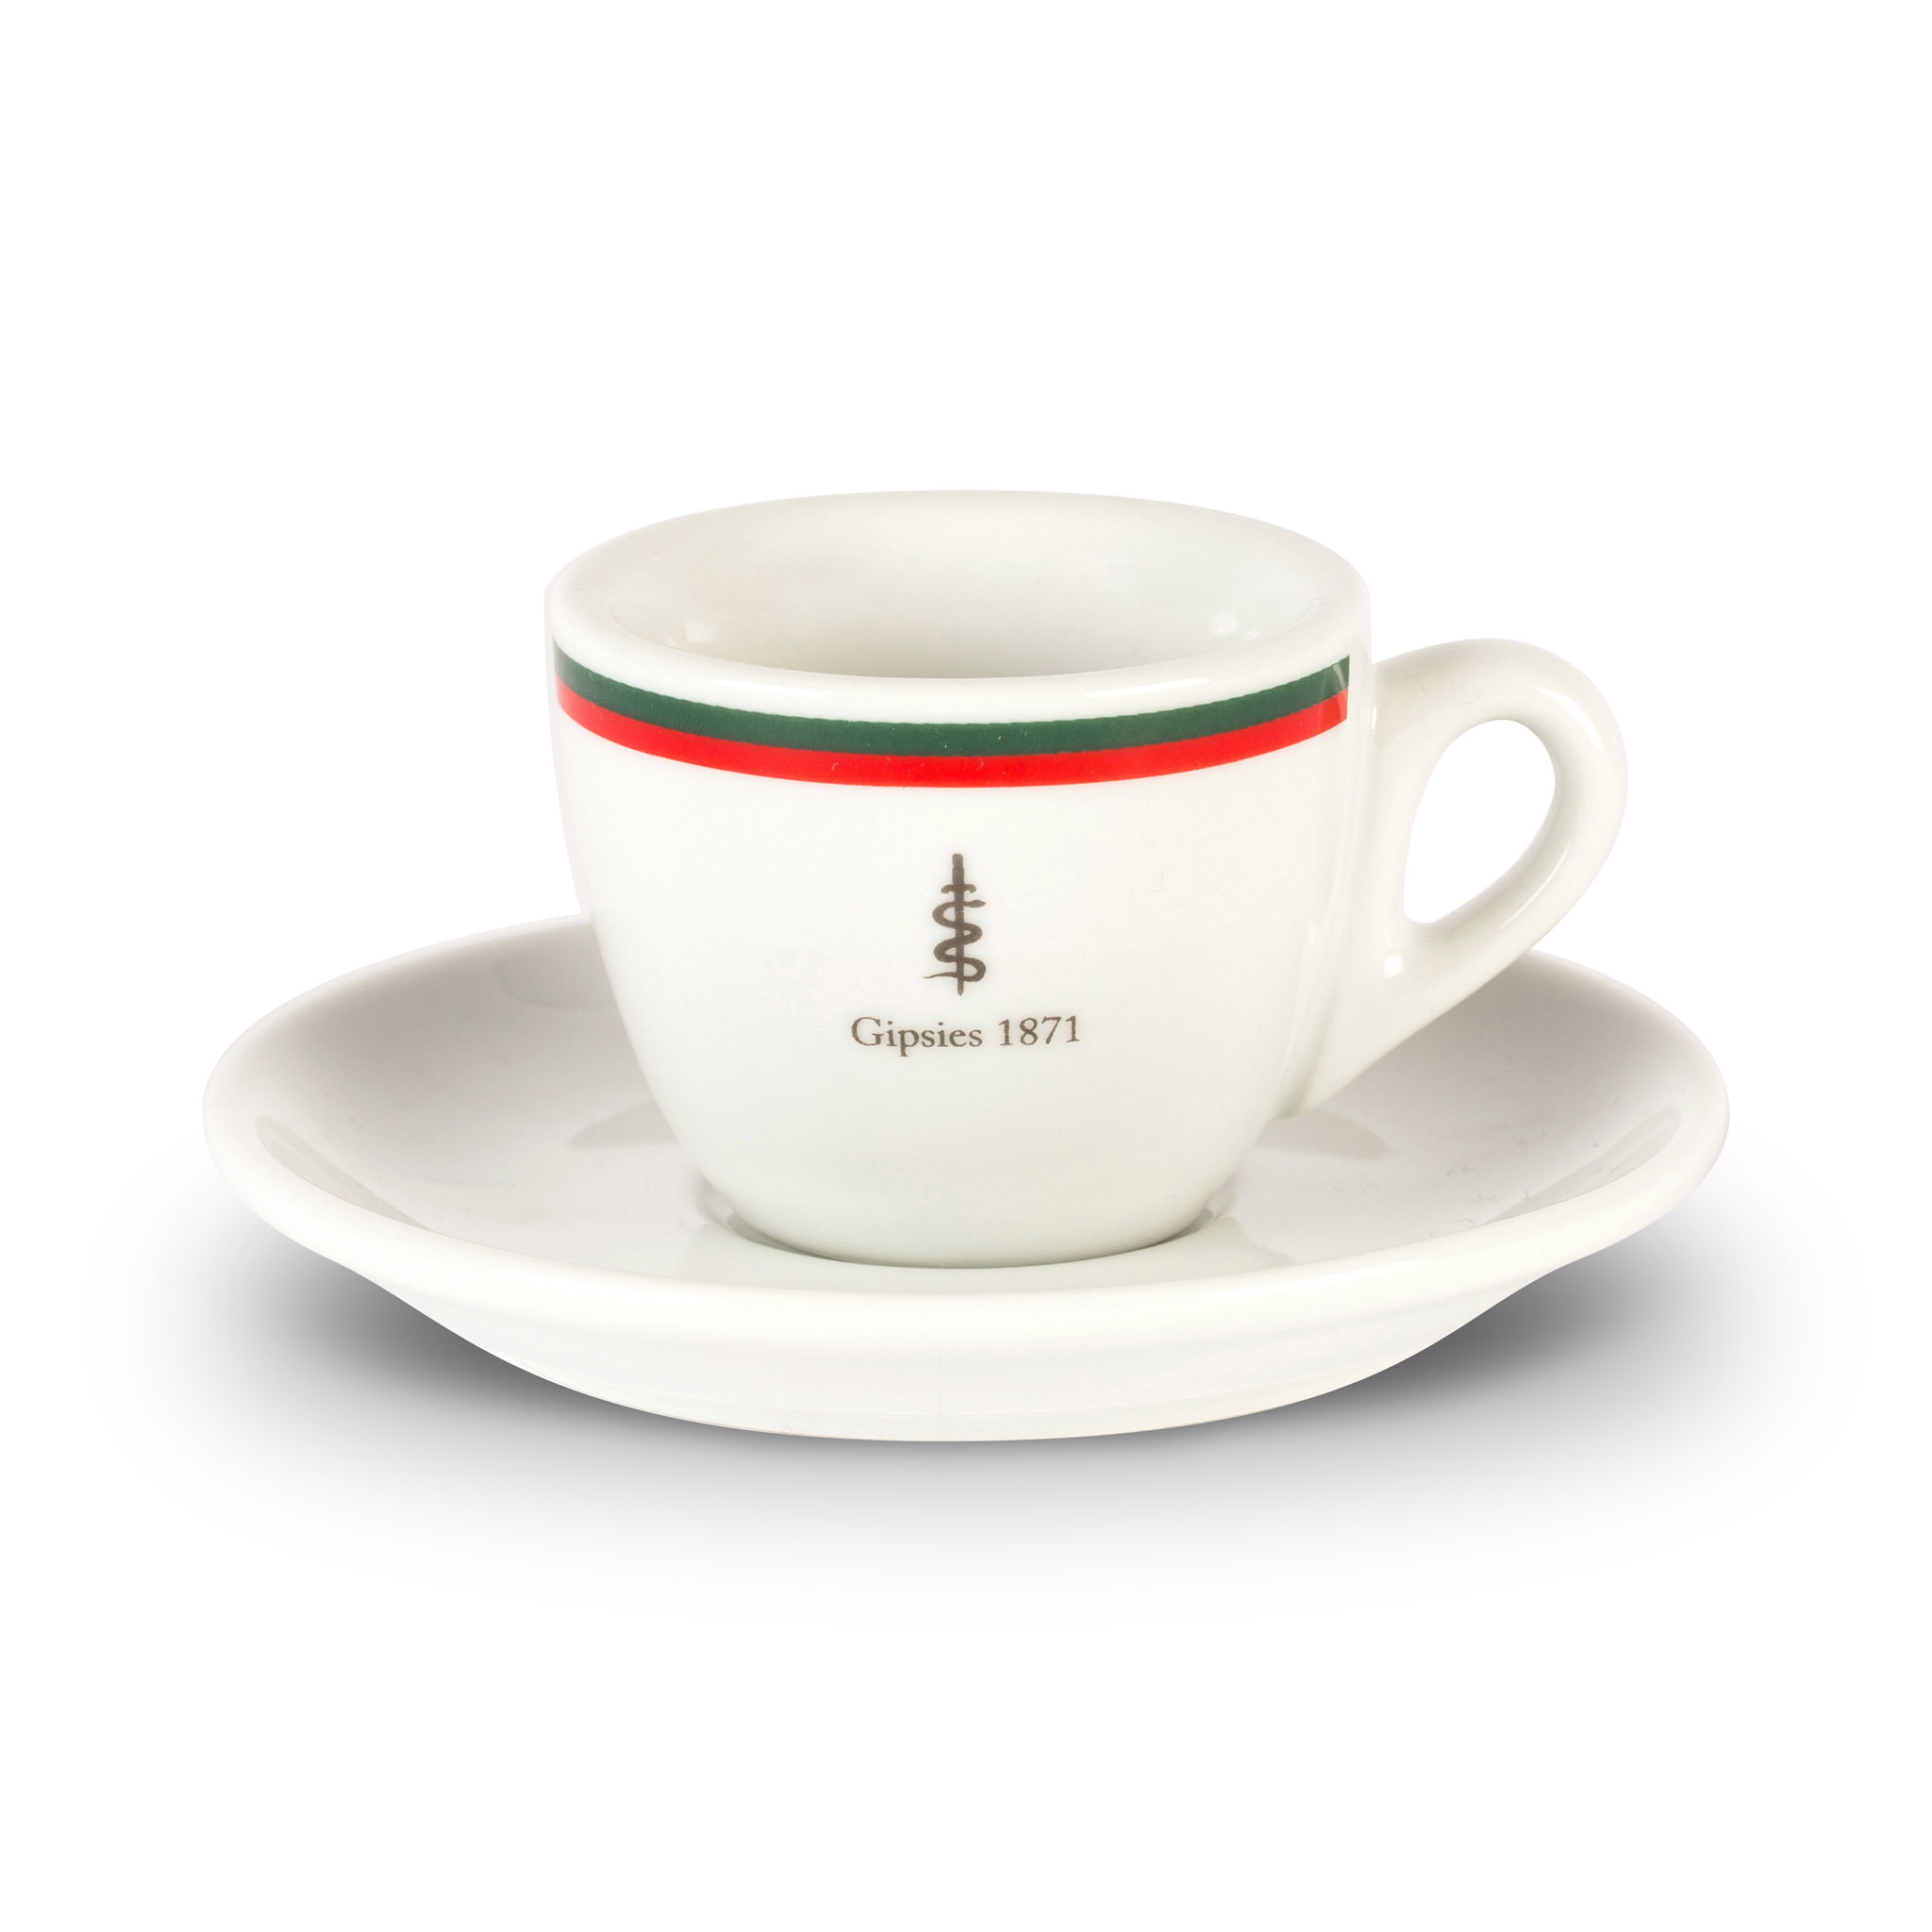 Gipsies espresso cup and saucer